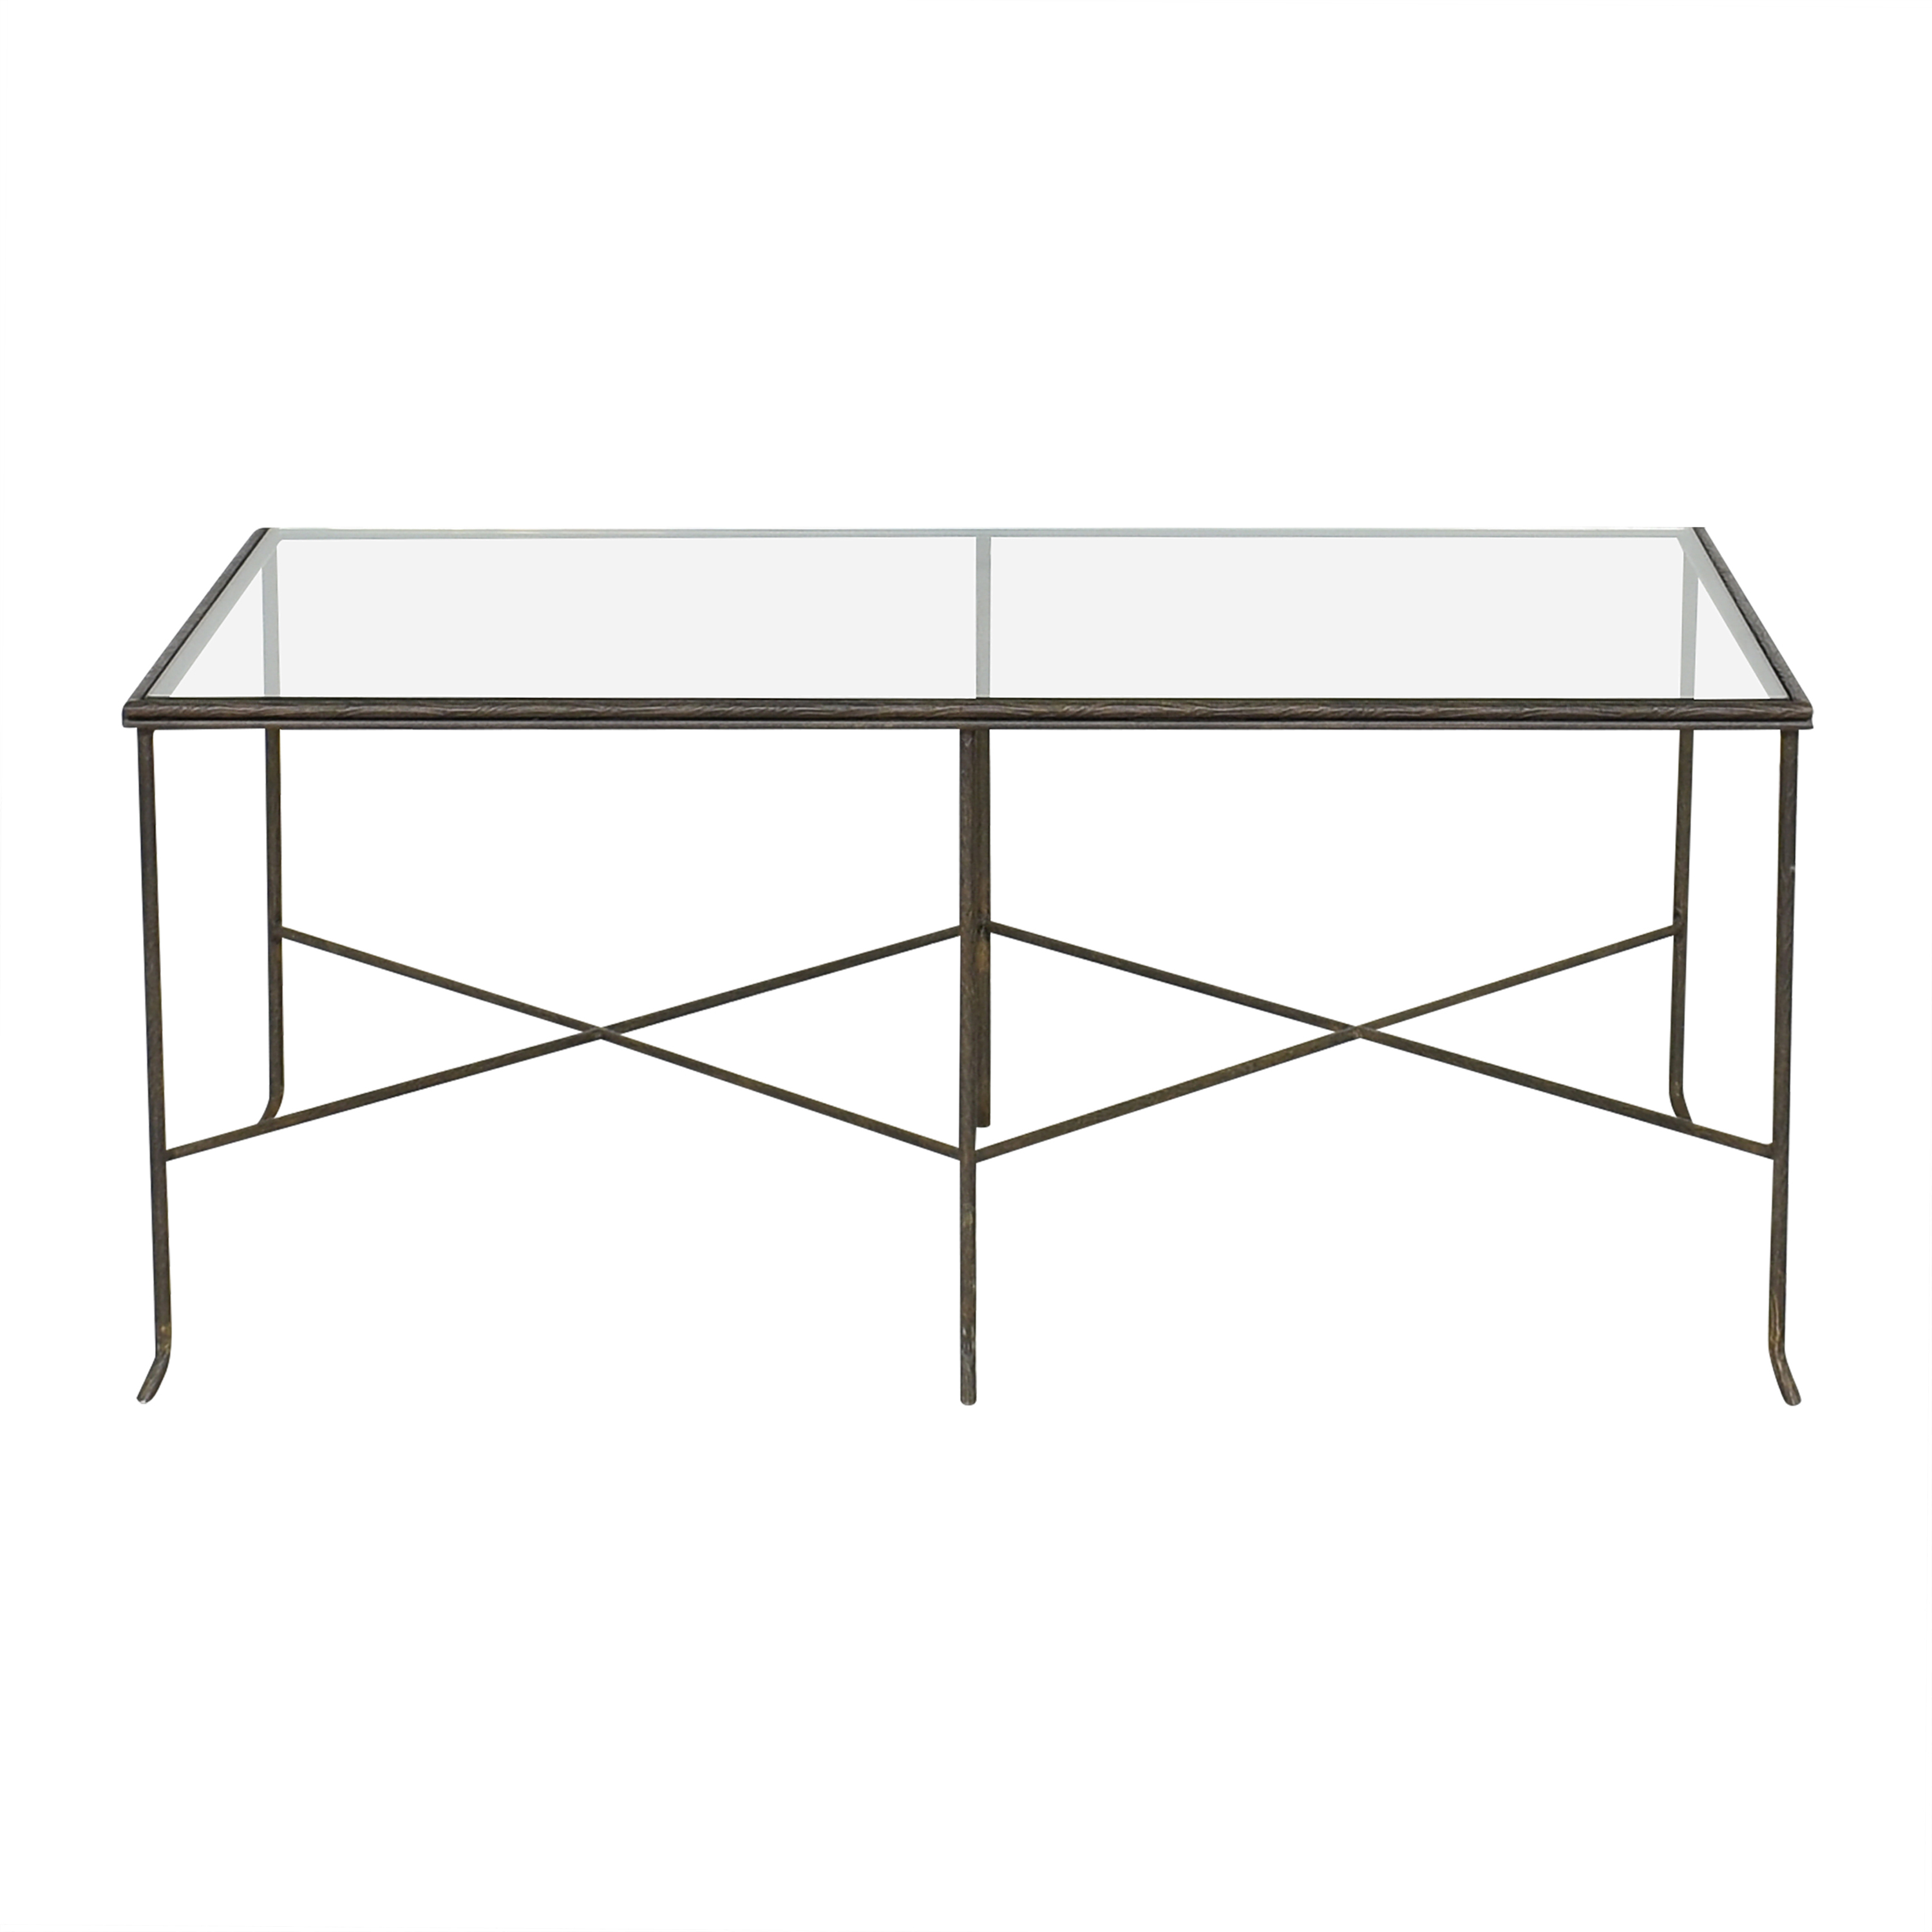 shop Salvations Architectural Furnishings McDowell Coffee Table Salvations Architectural Furnishings Tables